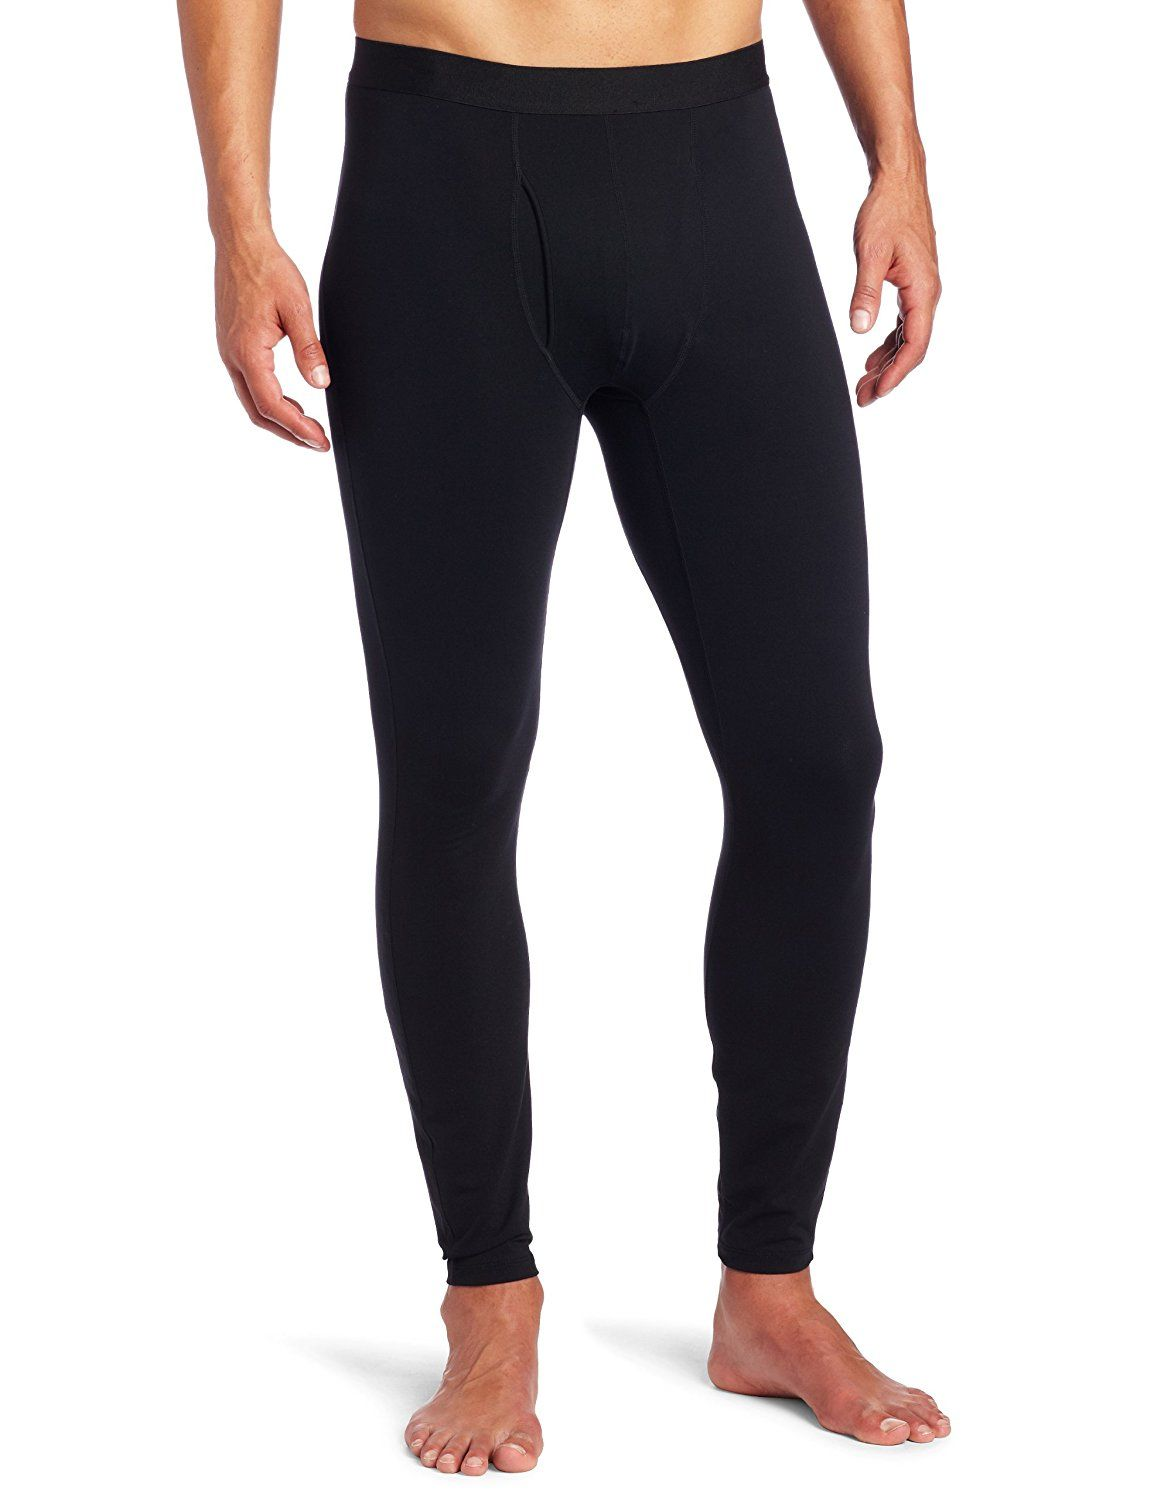 2a84f4eb8 Columbia Men's Baselayer Midweight Tight Bottom with Fly *** This is ...